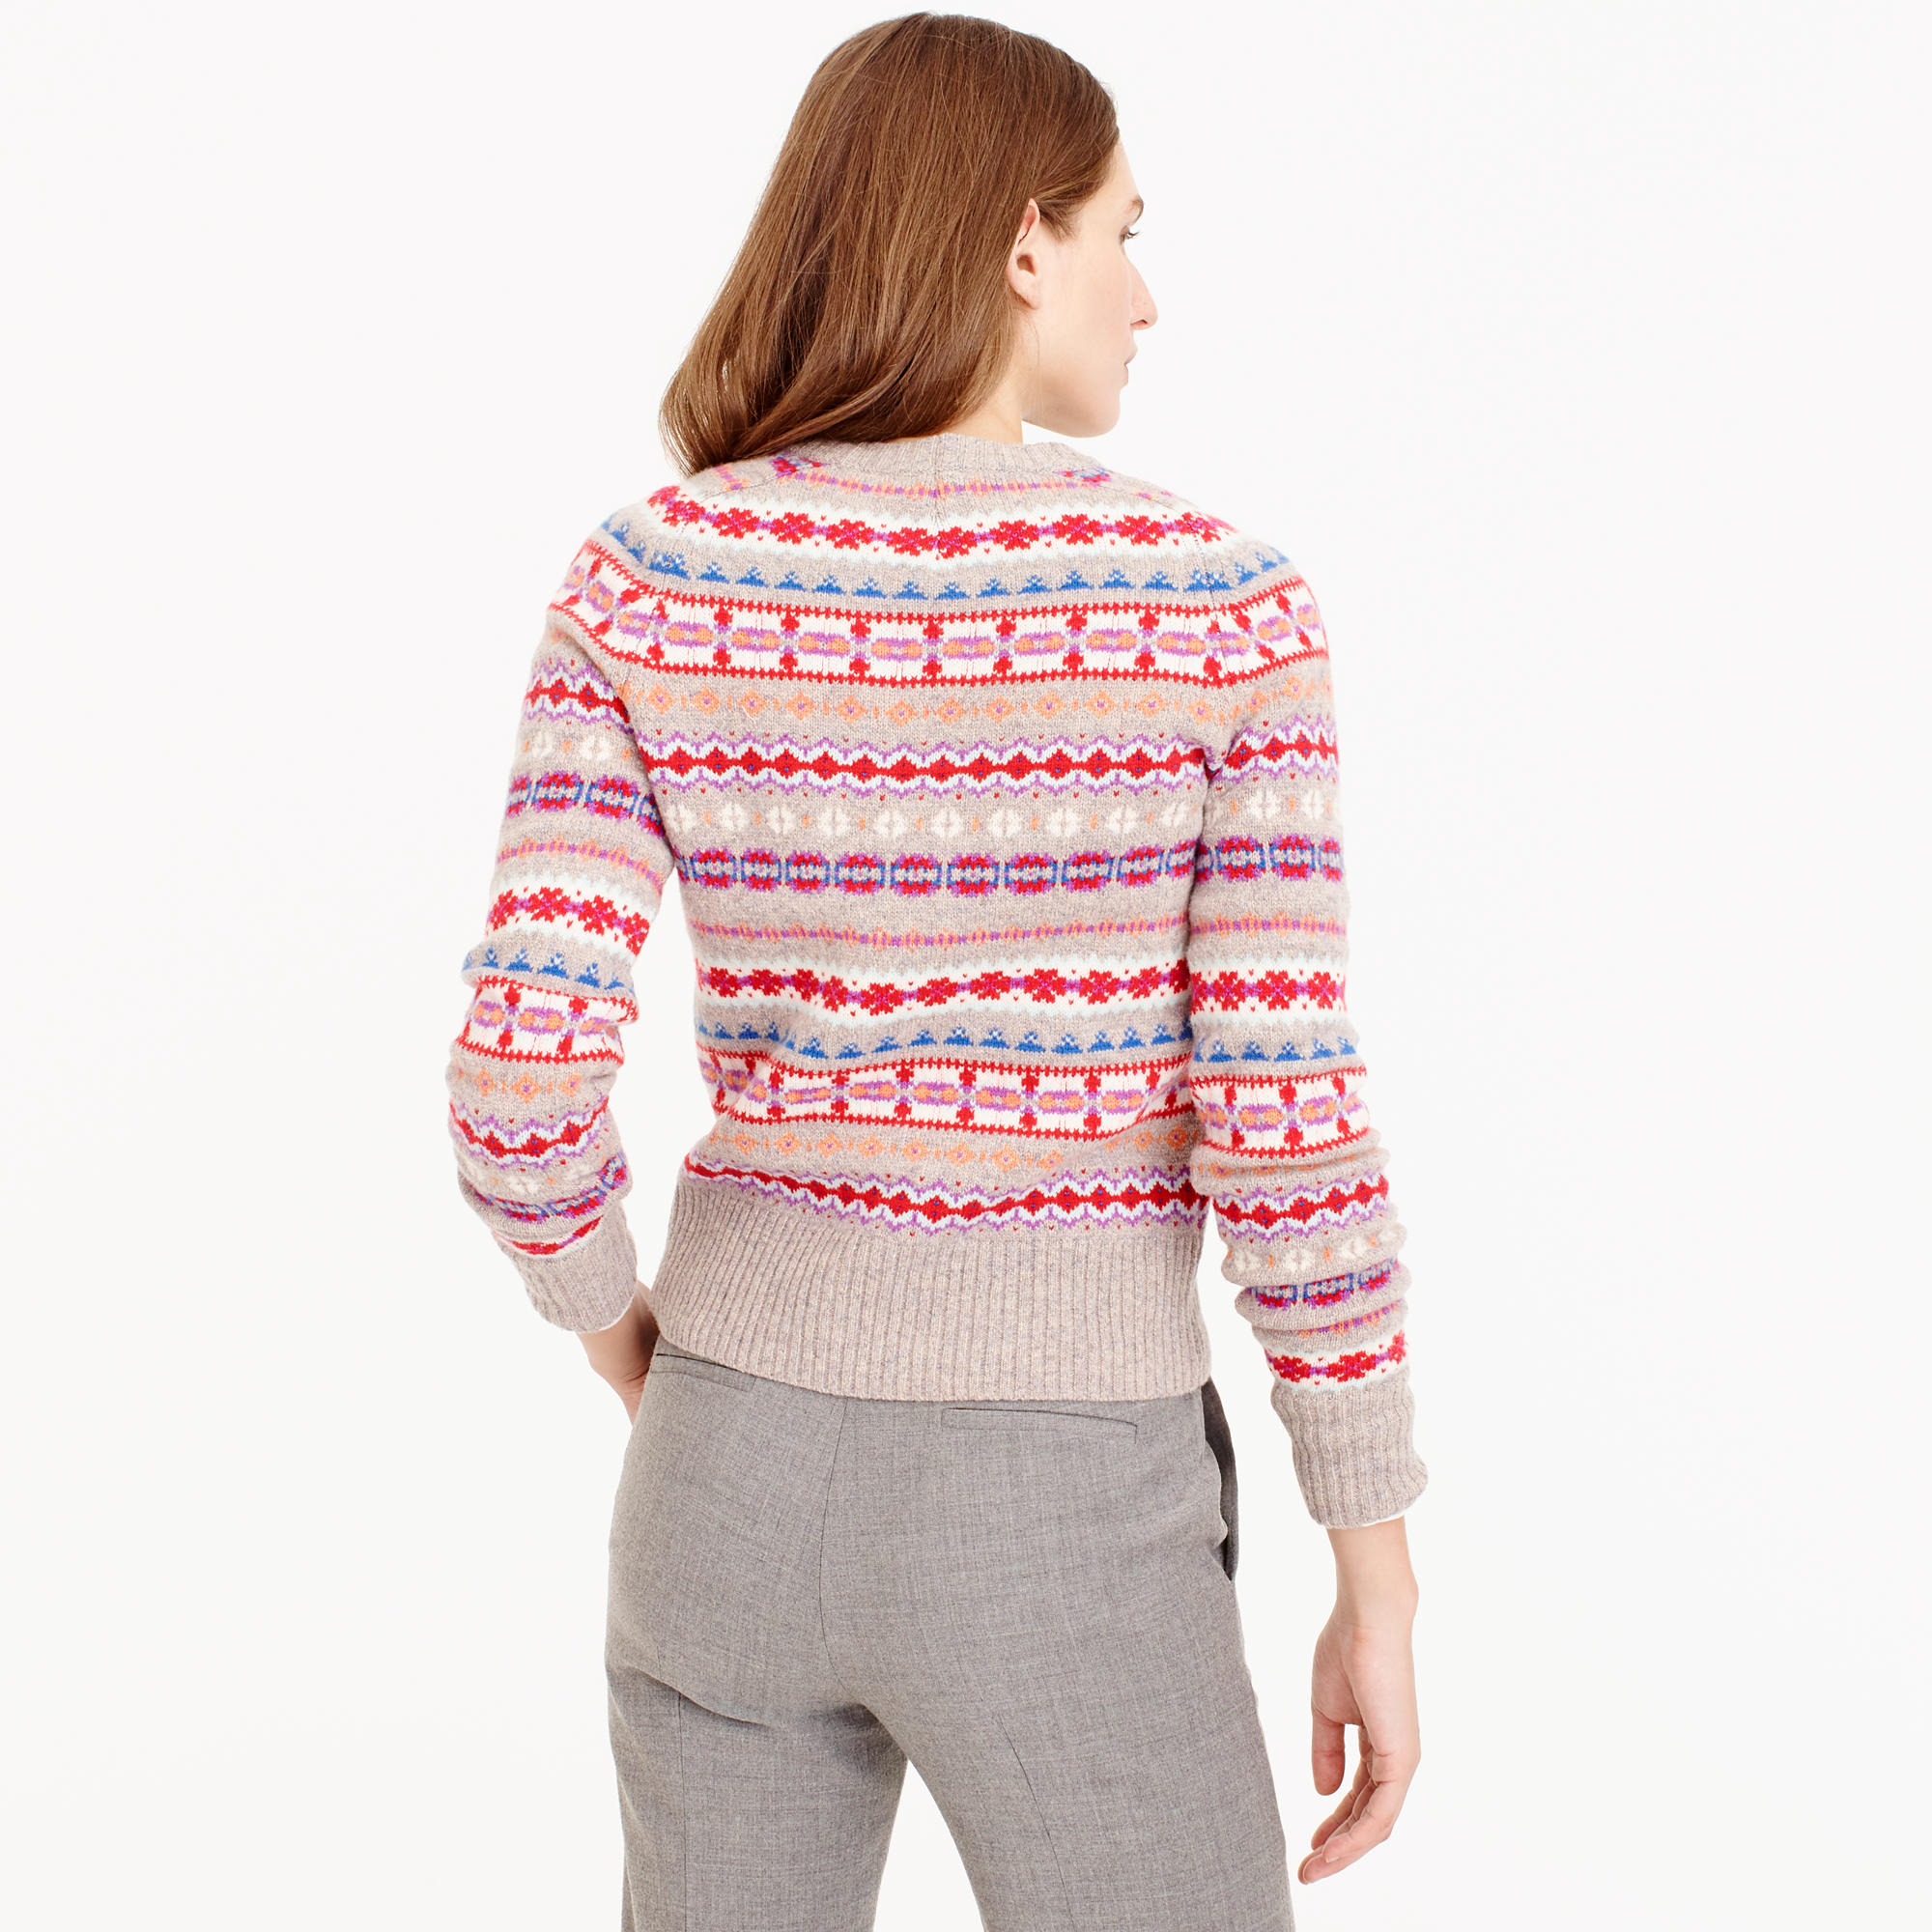 Holly Sweater In Fair Isle : Women's Sweaters | J.Crew